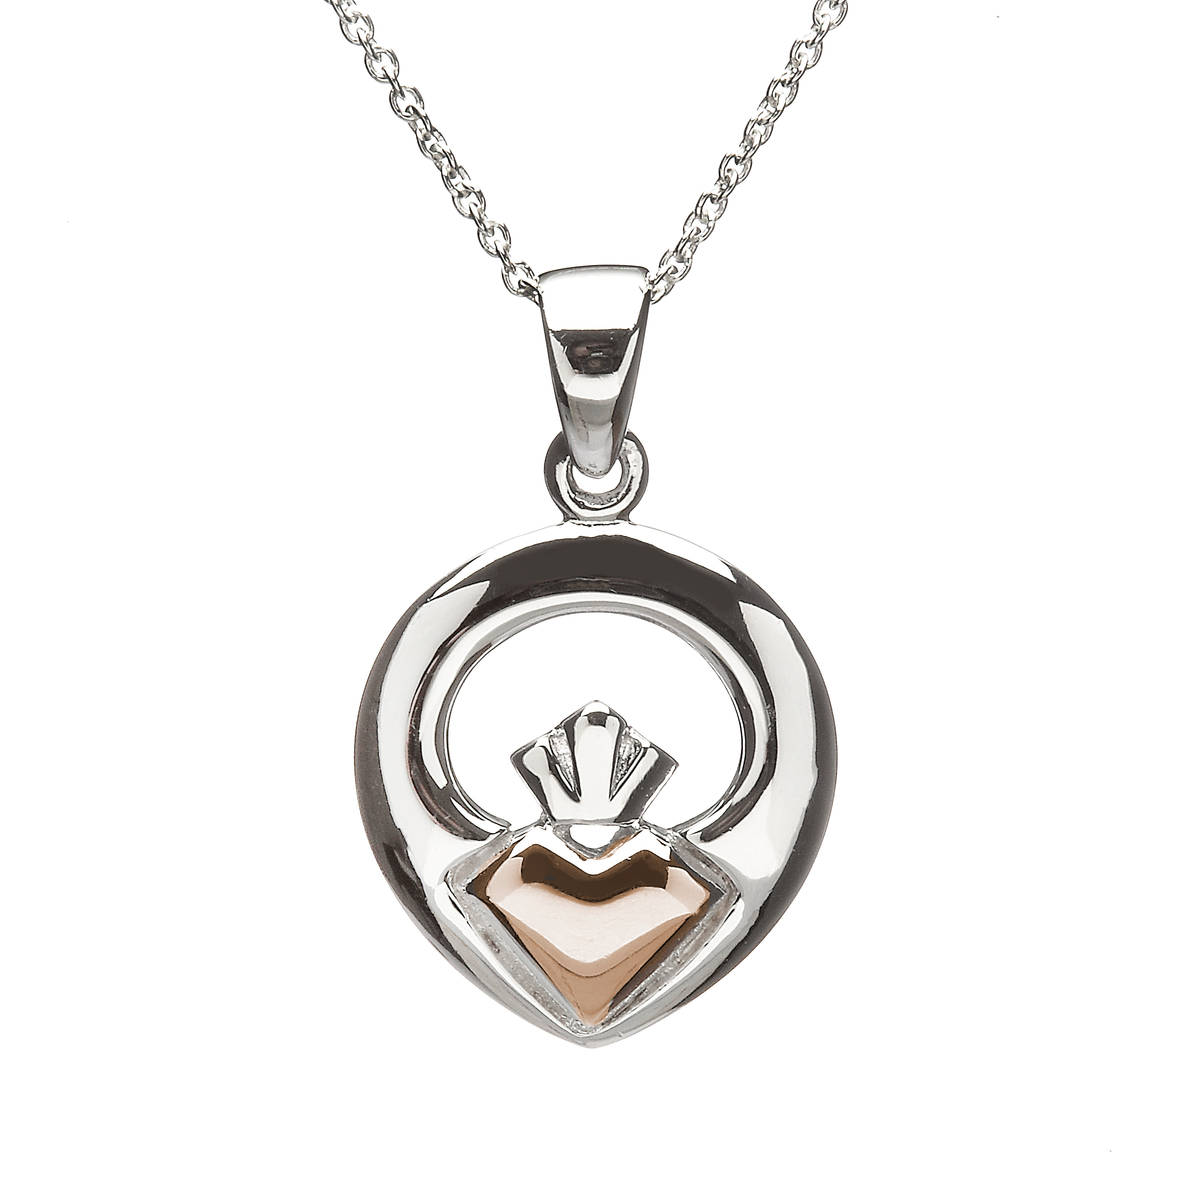 House of Lor silver/rose gold Claddagh pendant heart made from rare Irish gold